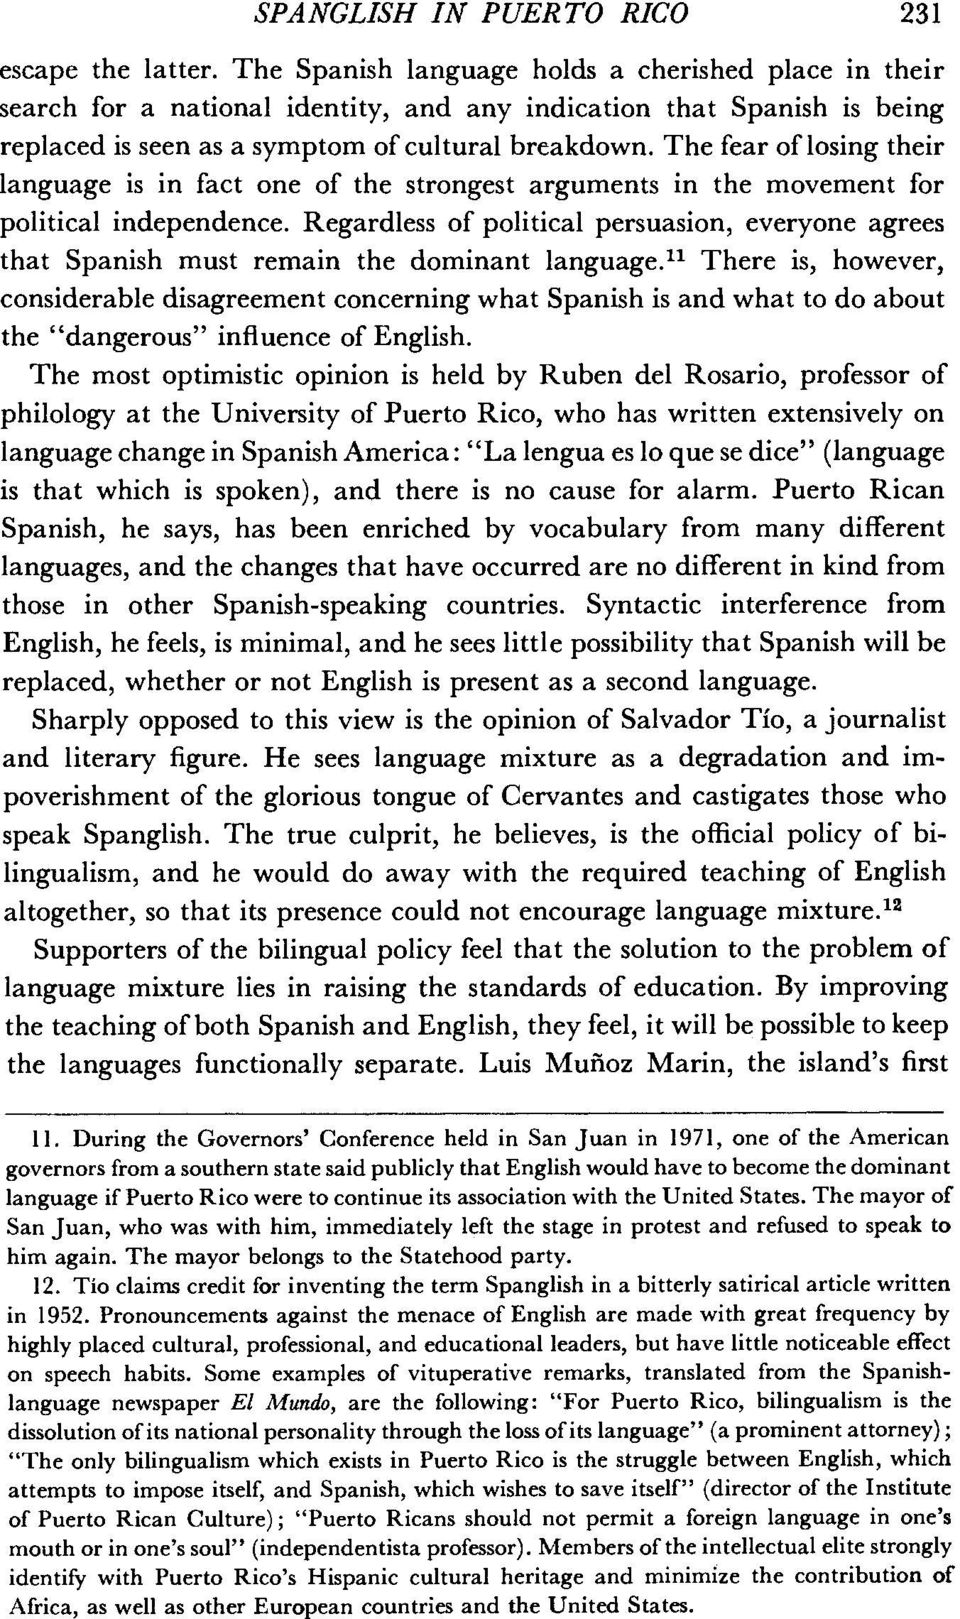 The fear of losing their language is in fact one of the strongest arguments in the movement for political independence.